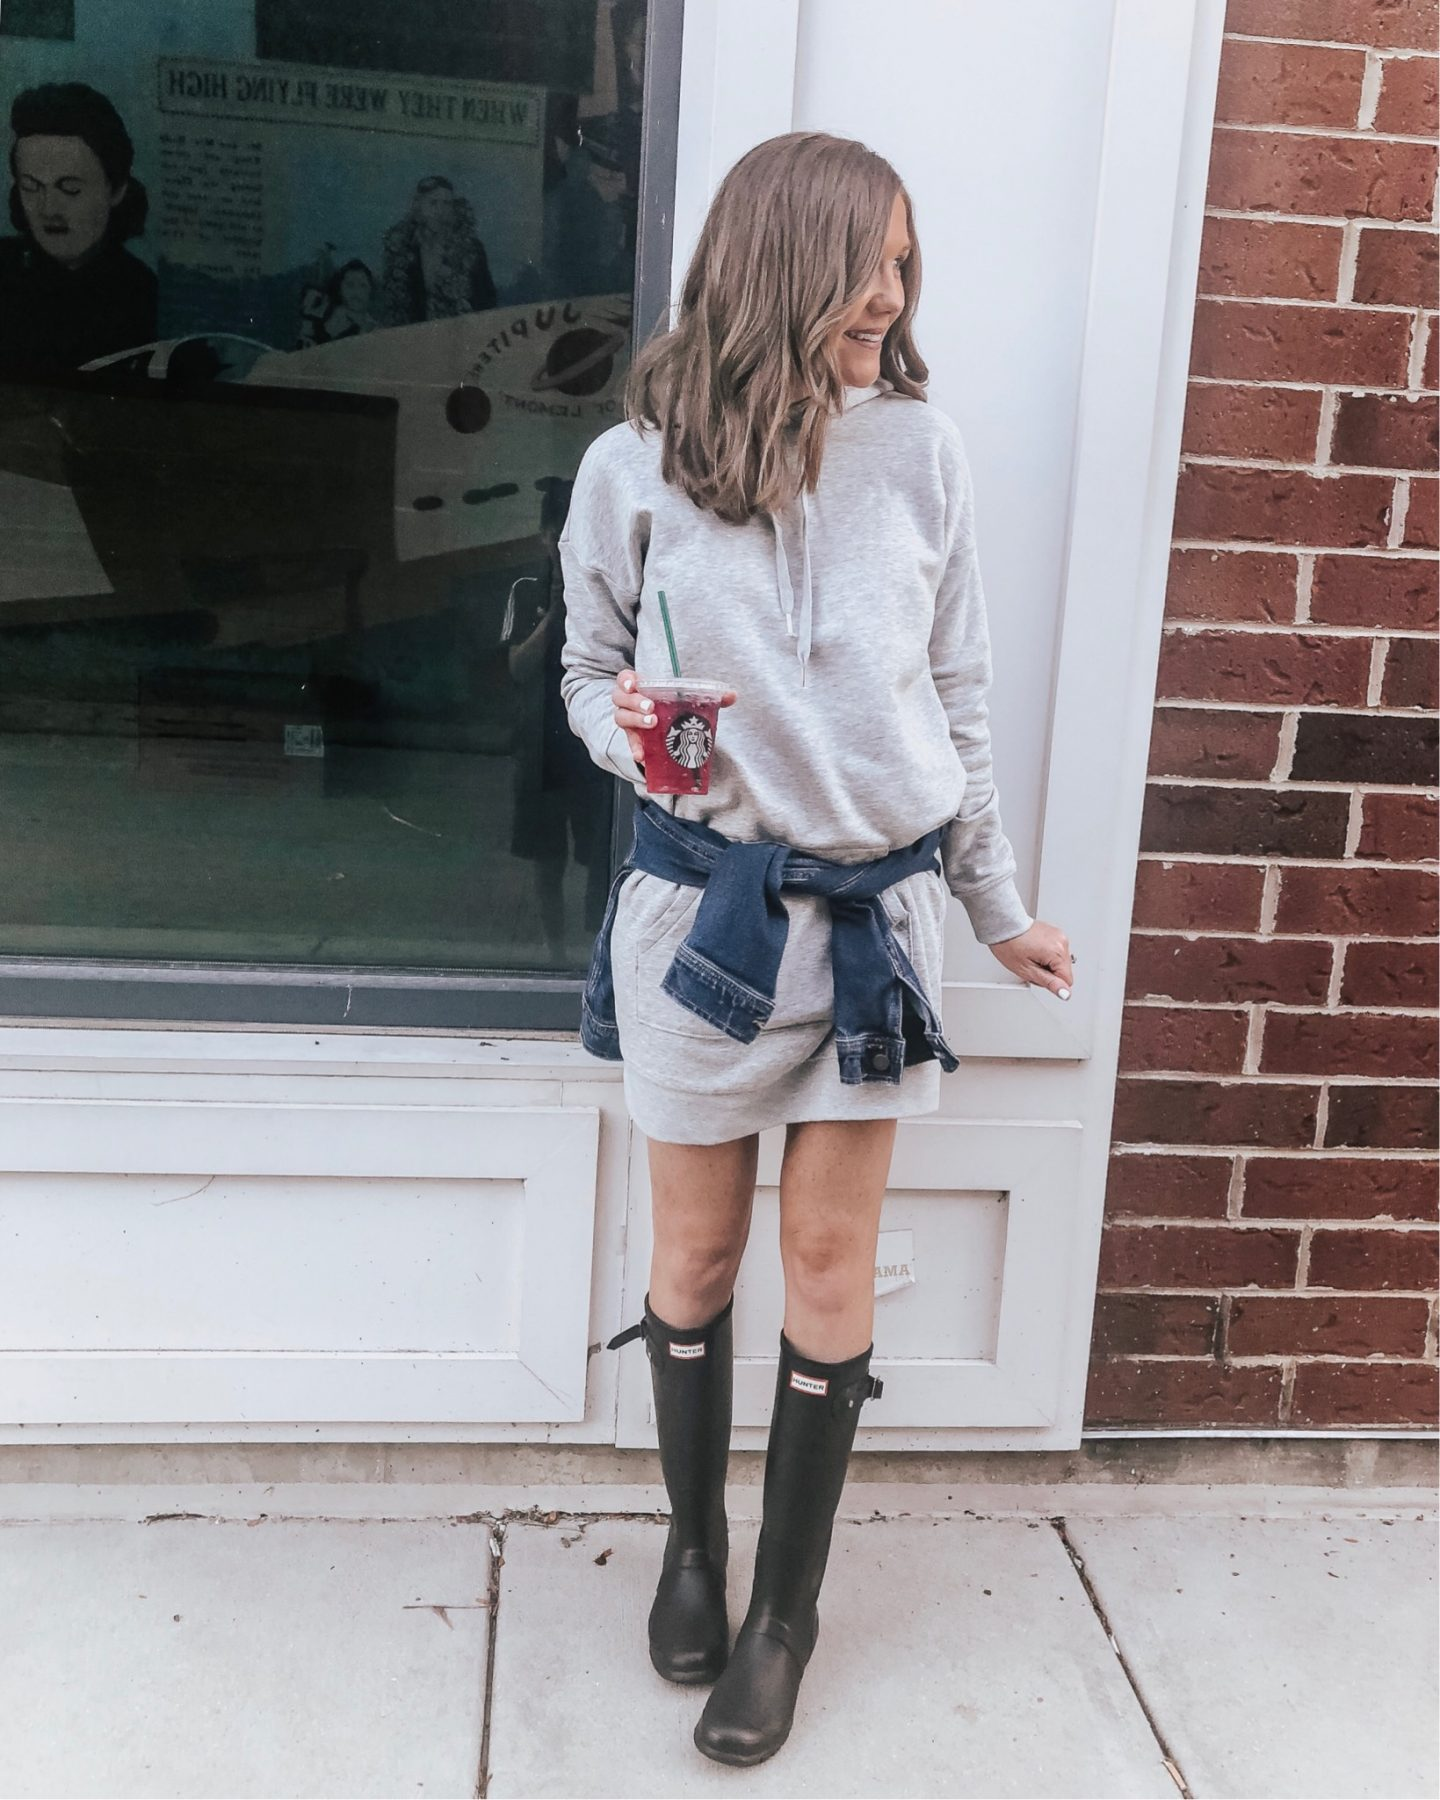 Real Life Outfits, what to wear in the fall, fall fashion 2018, how to transition summer clothing to fall, fall fashion trends for 2018, mom style